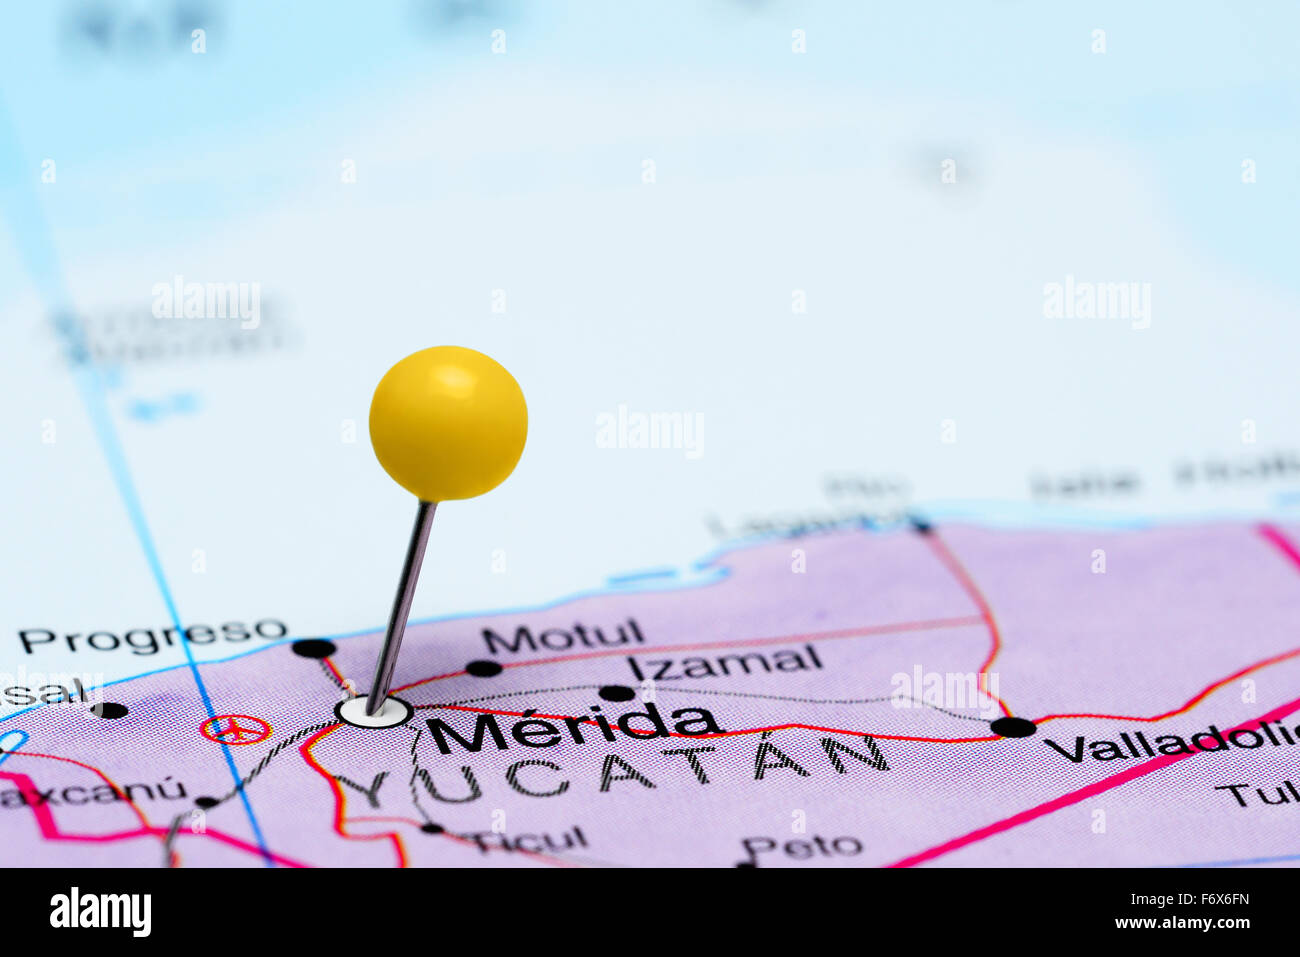 Merida Pinned On A Map Of Mexico Stock Photo 90315673 Alamy